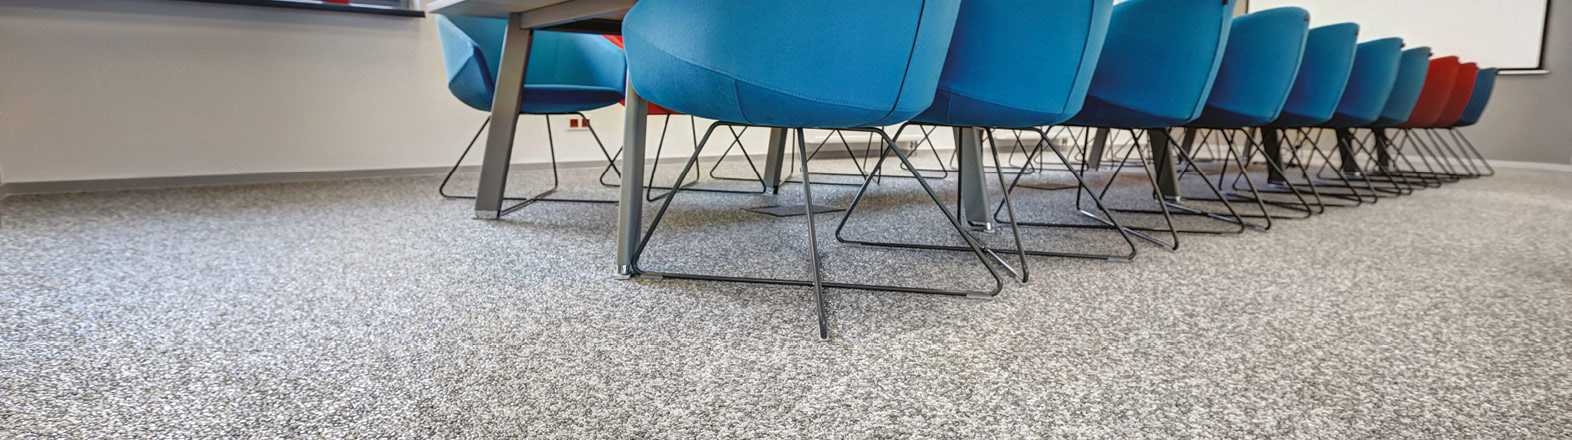 Joint-Free Natural Stone Finishes Perfectly Suited for  Internal and External Commercial Environments.